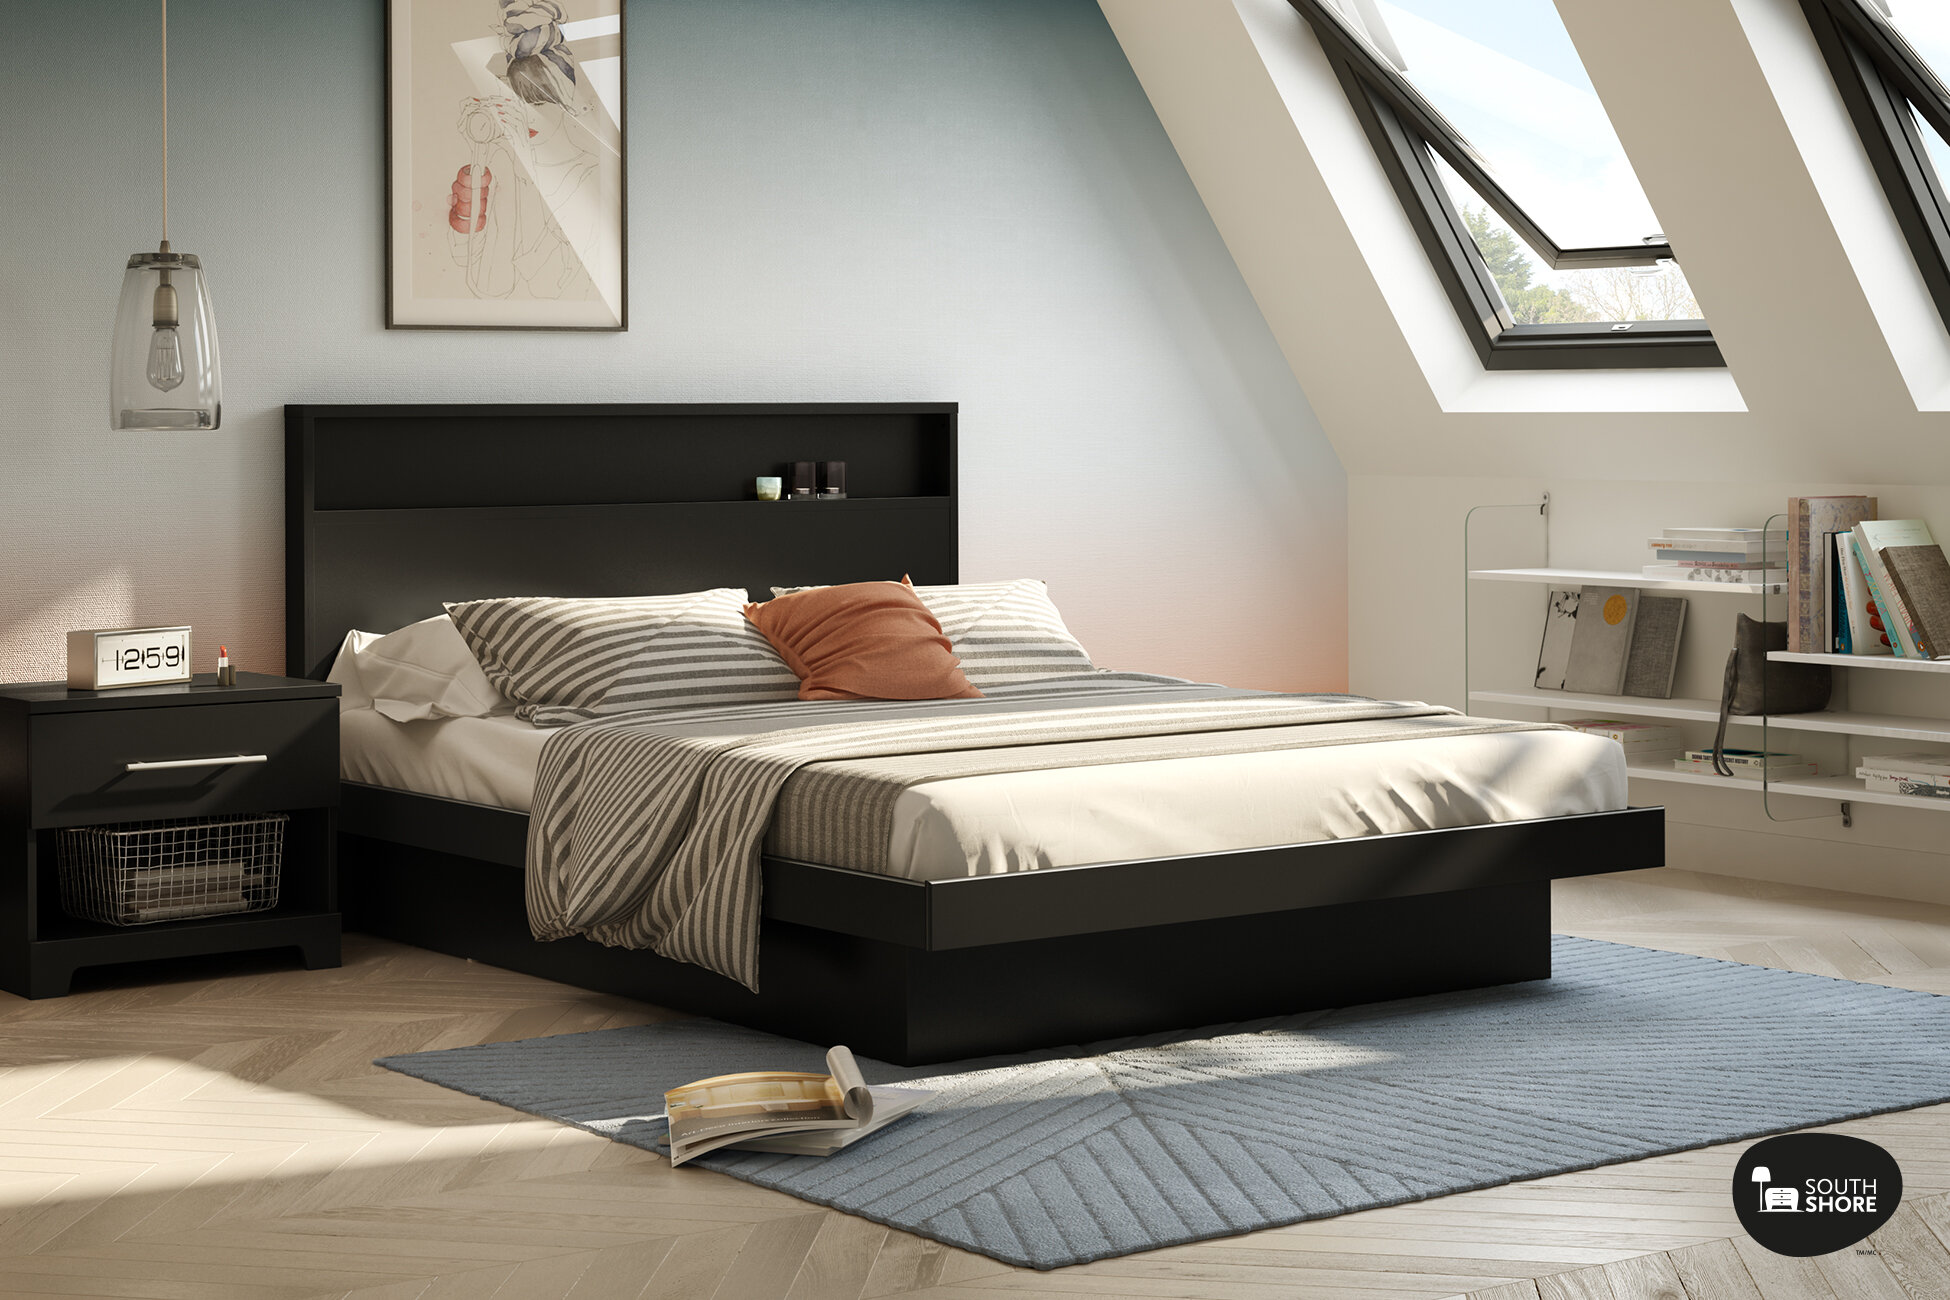 New Platform Bed Frame Queen Style